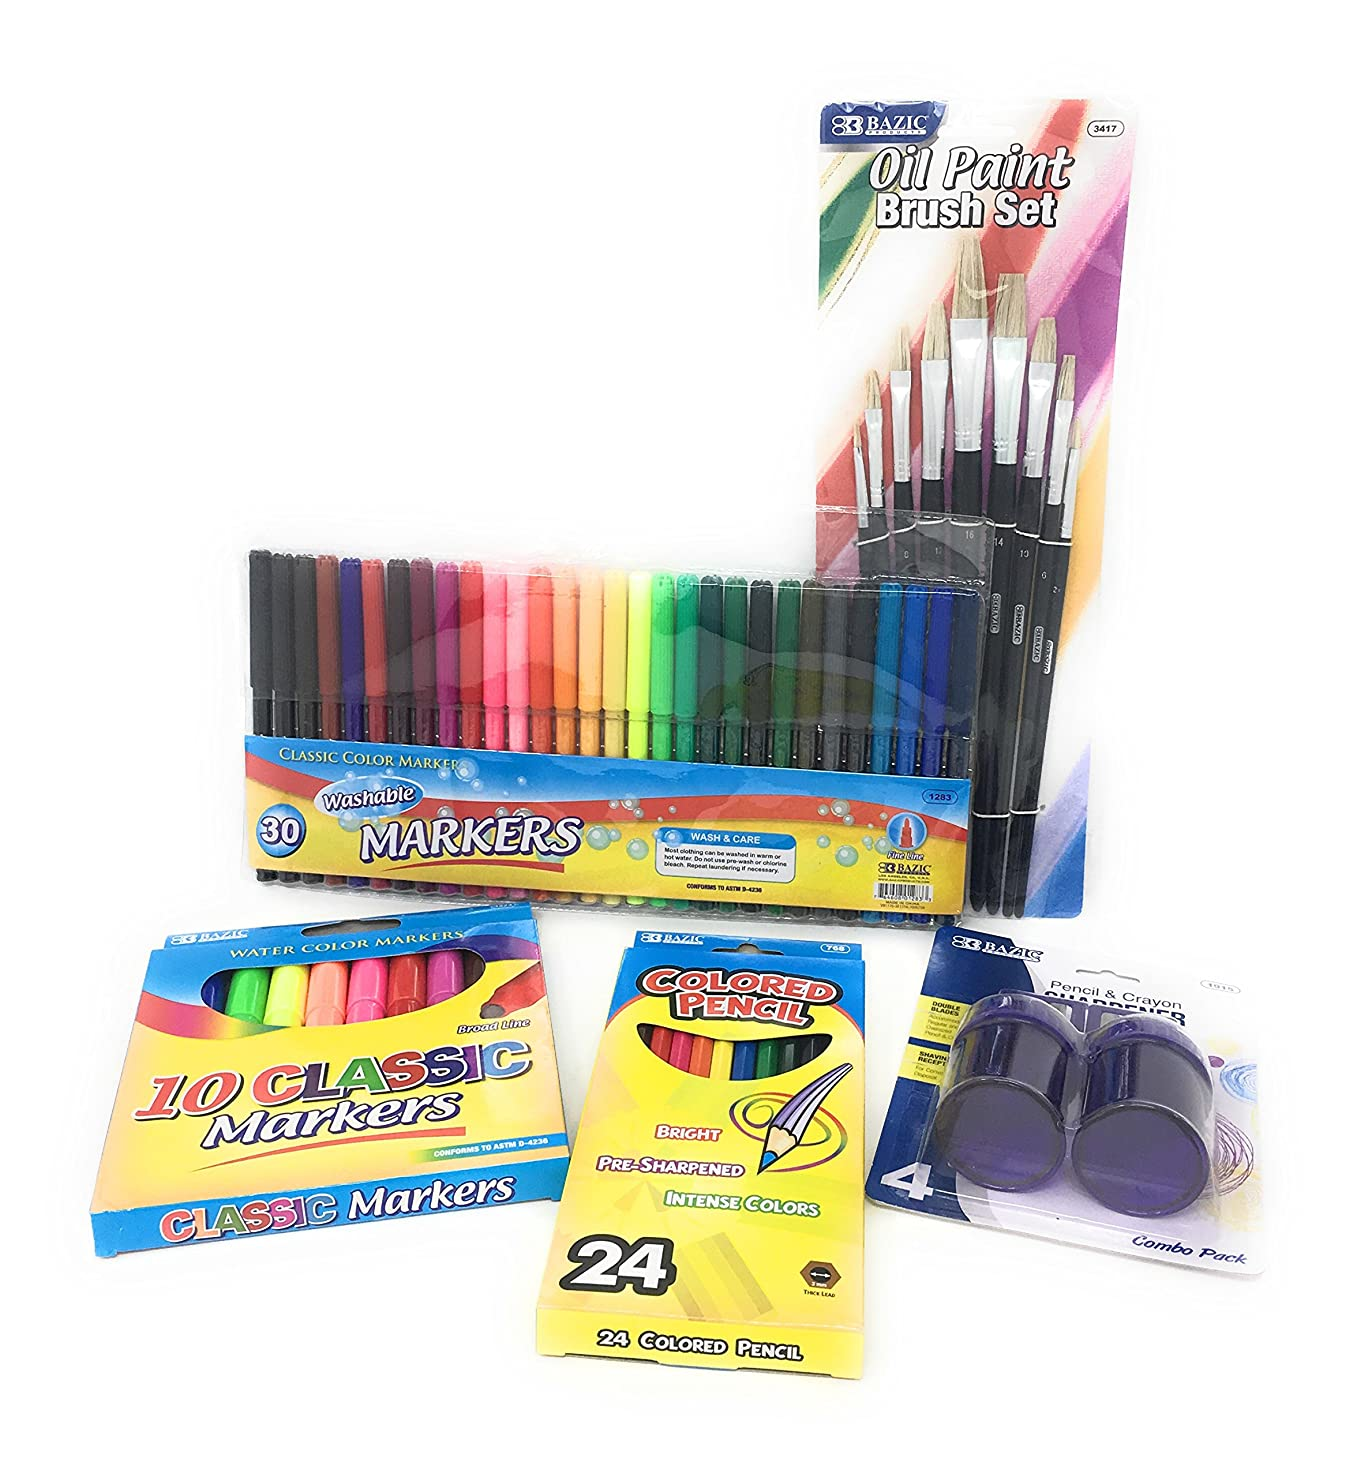 Art Supplies for Kids Bundle: 30 Thin Markers, 10 Classic Markers, Oil Paint Brush Set, 24 Colored Pencils, Pencil and Crayon Sharpener( 5 Items)